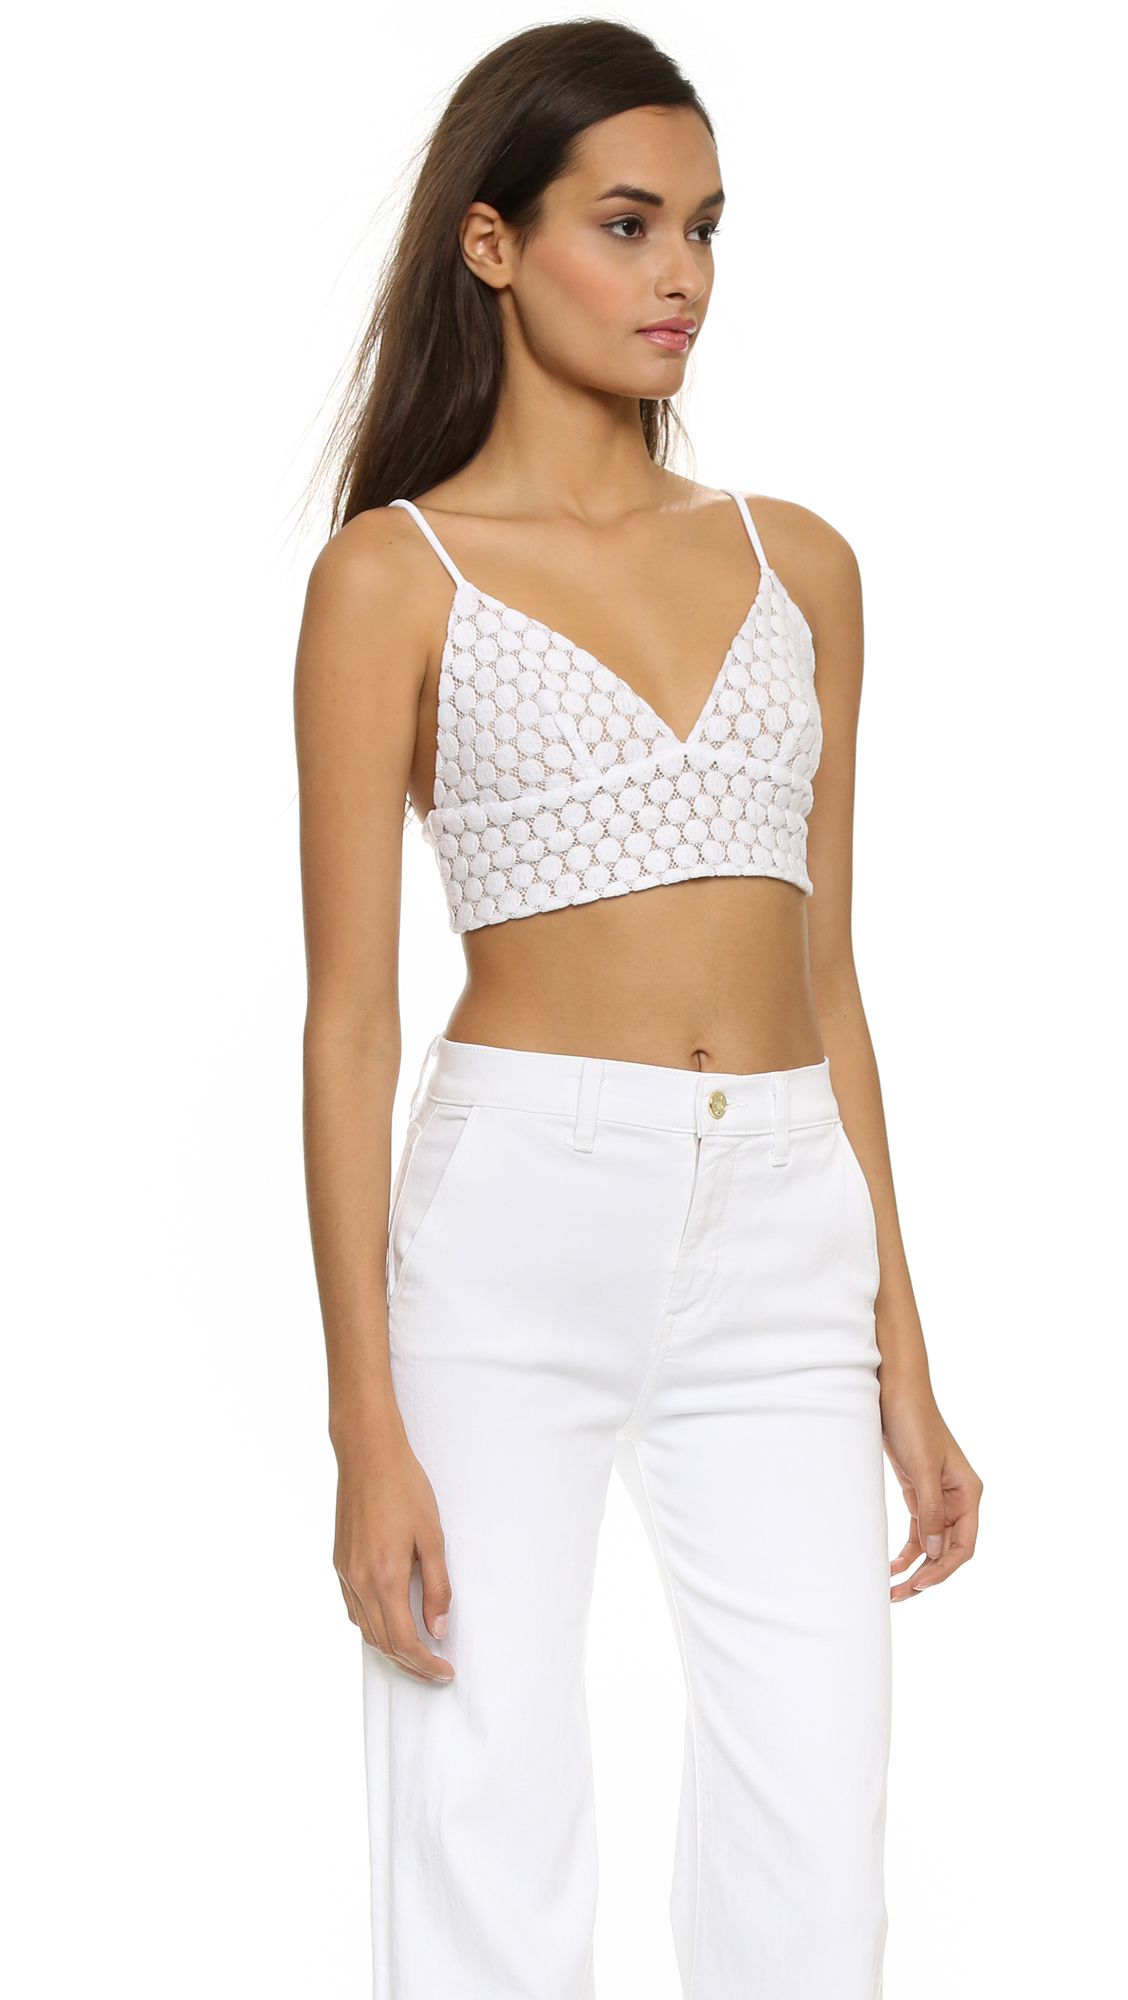 ff222e5211 Lyst - David Lerner Lace Bralette Top - Ink in White